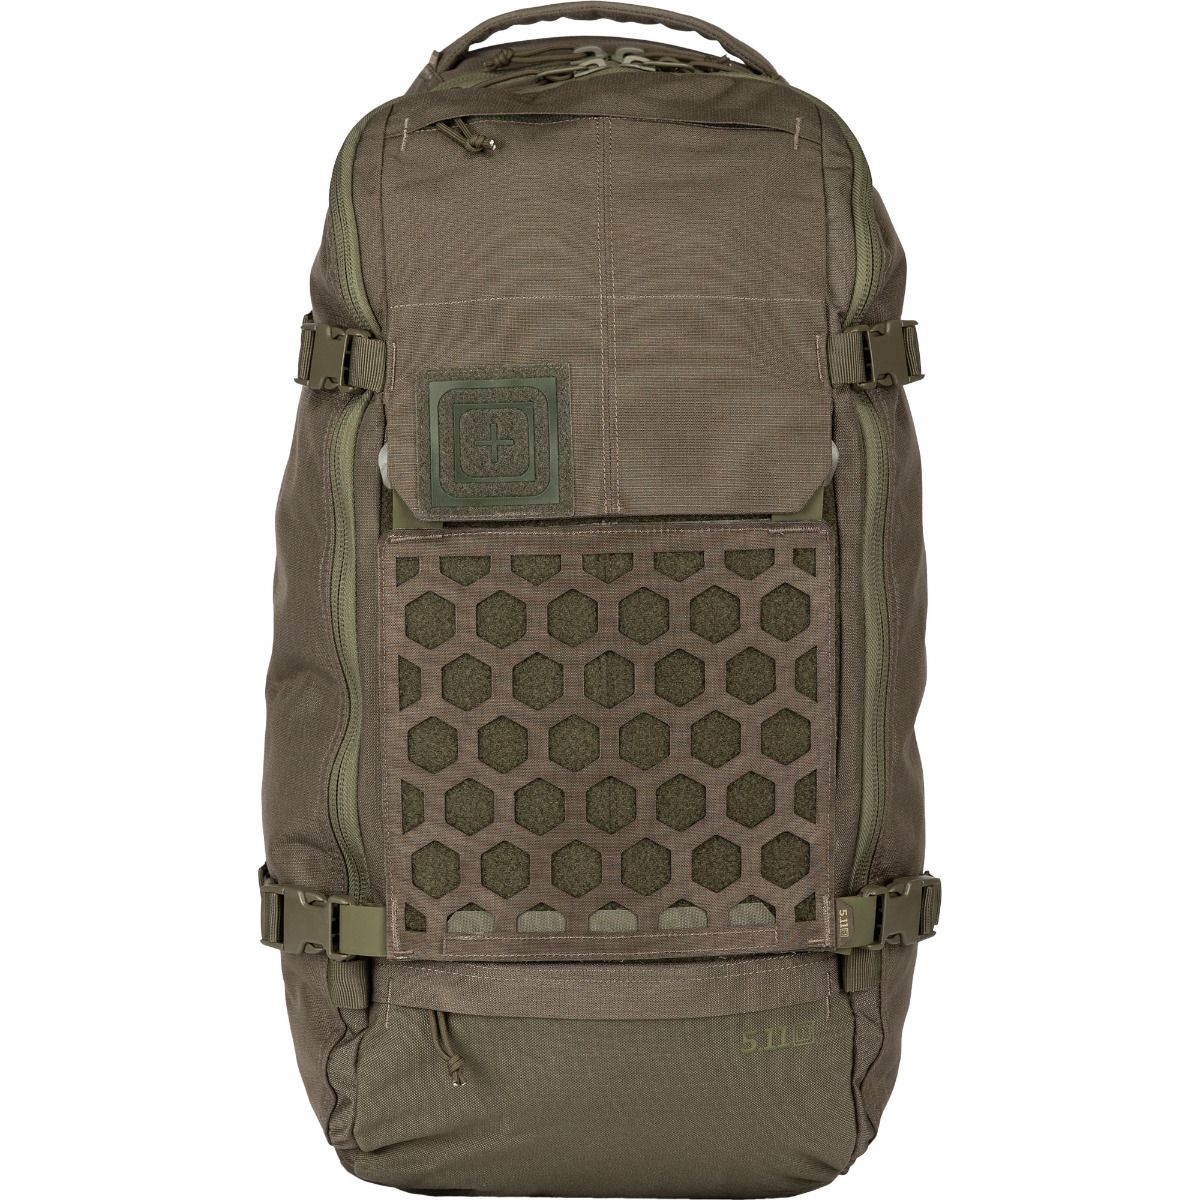 Balo 5.11 Tactical AMP72™ 40L – Ranger Green